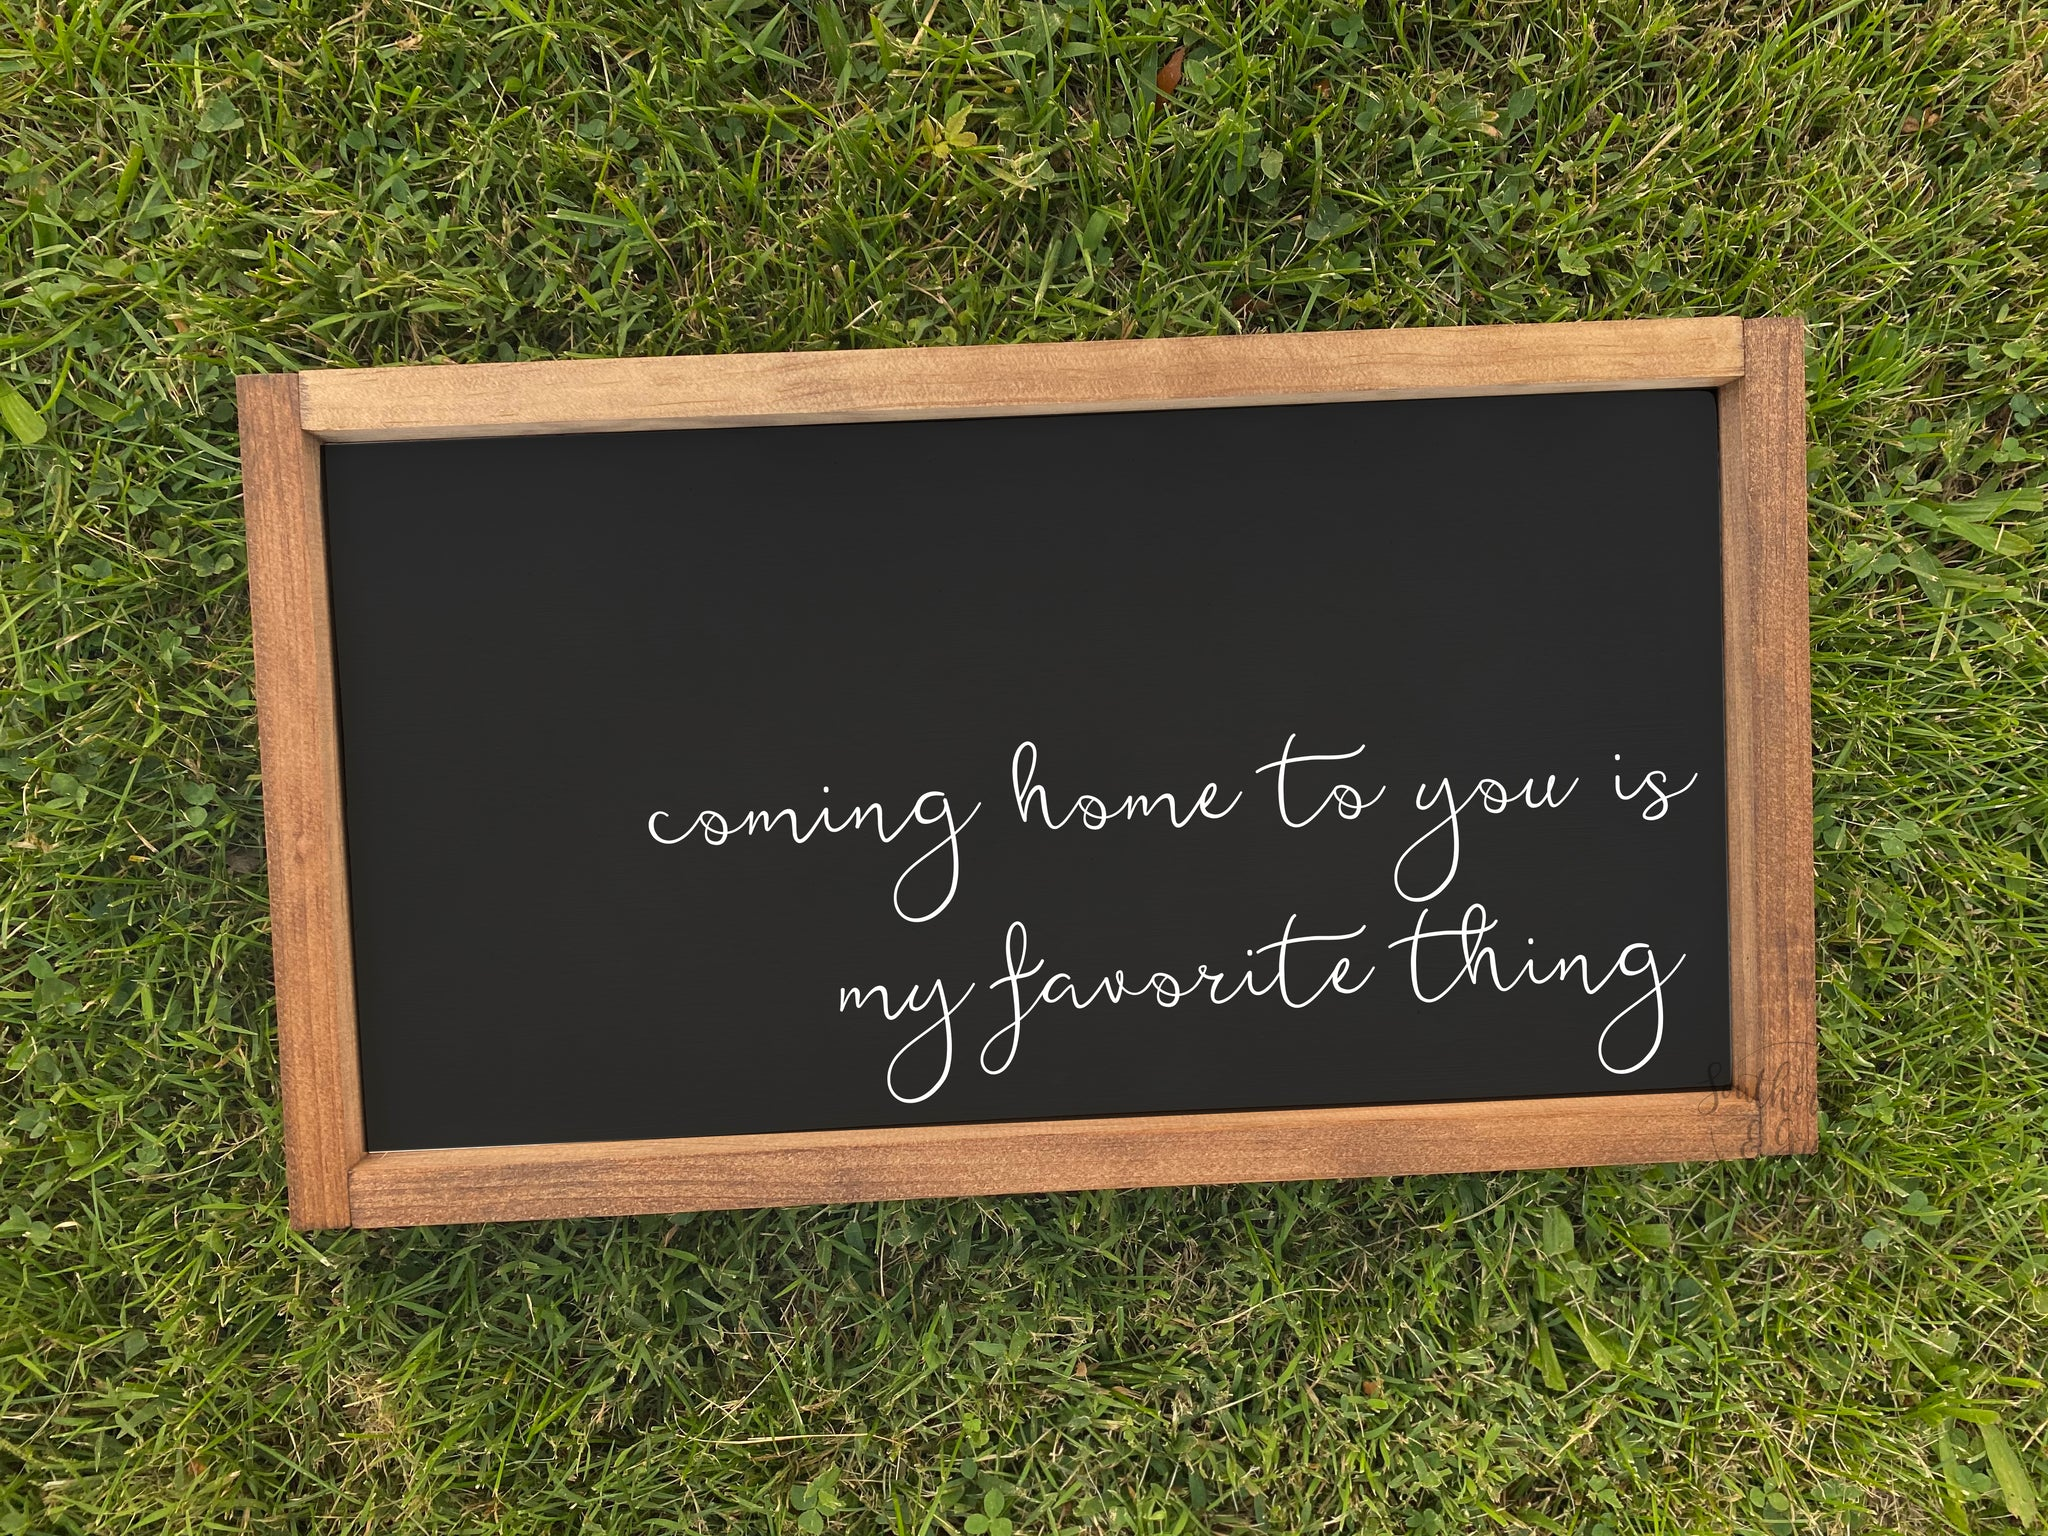 Coming Home To You Framed Wood Sign